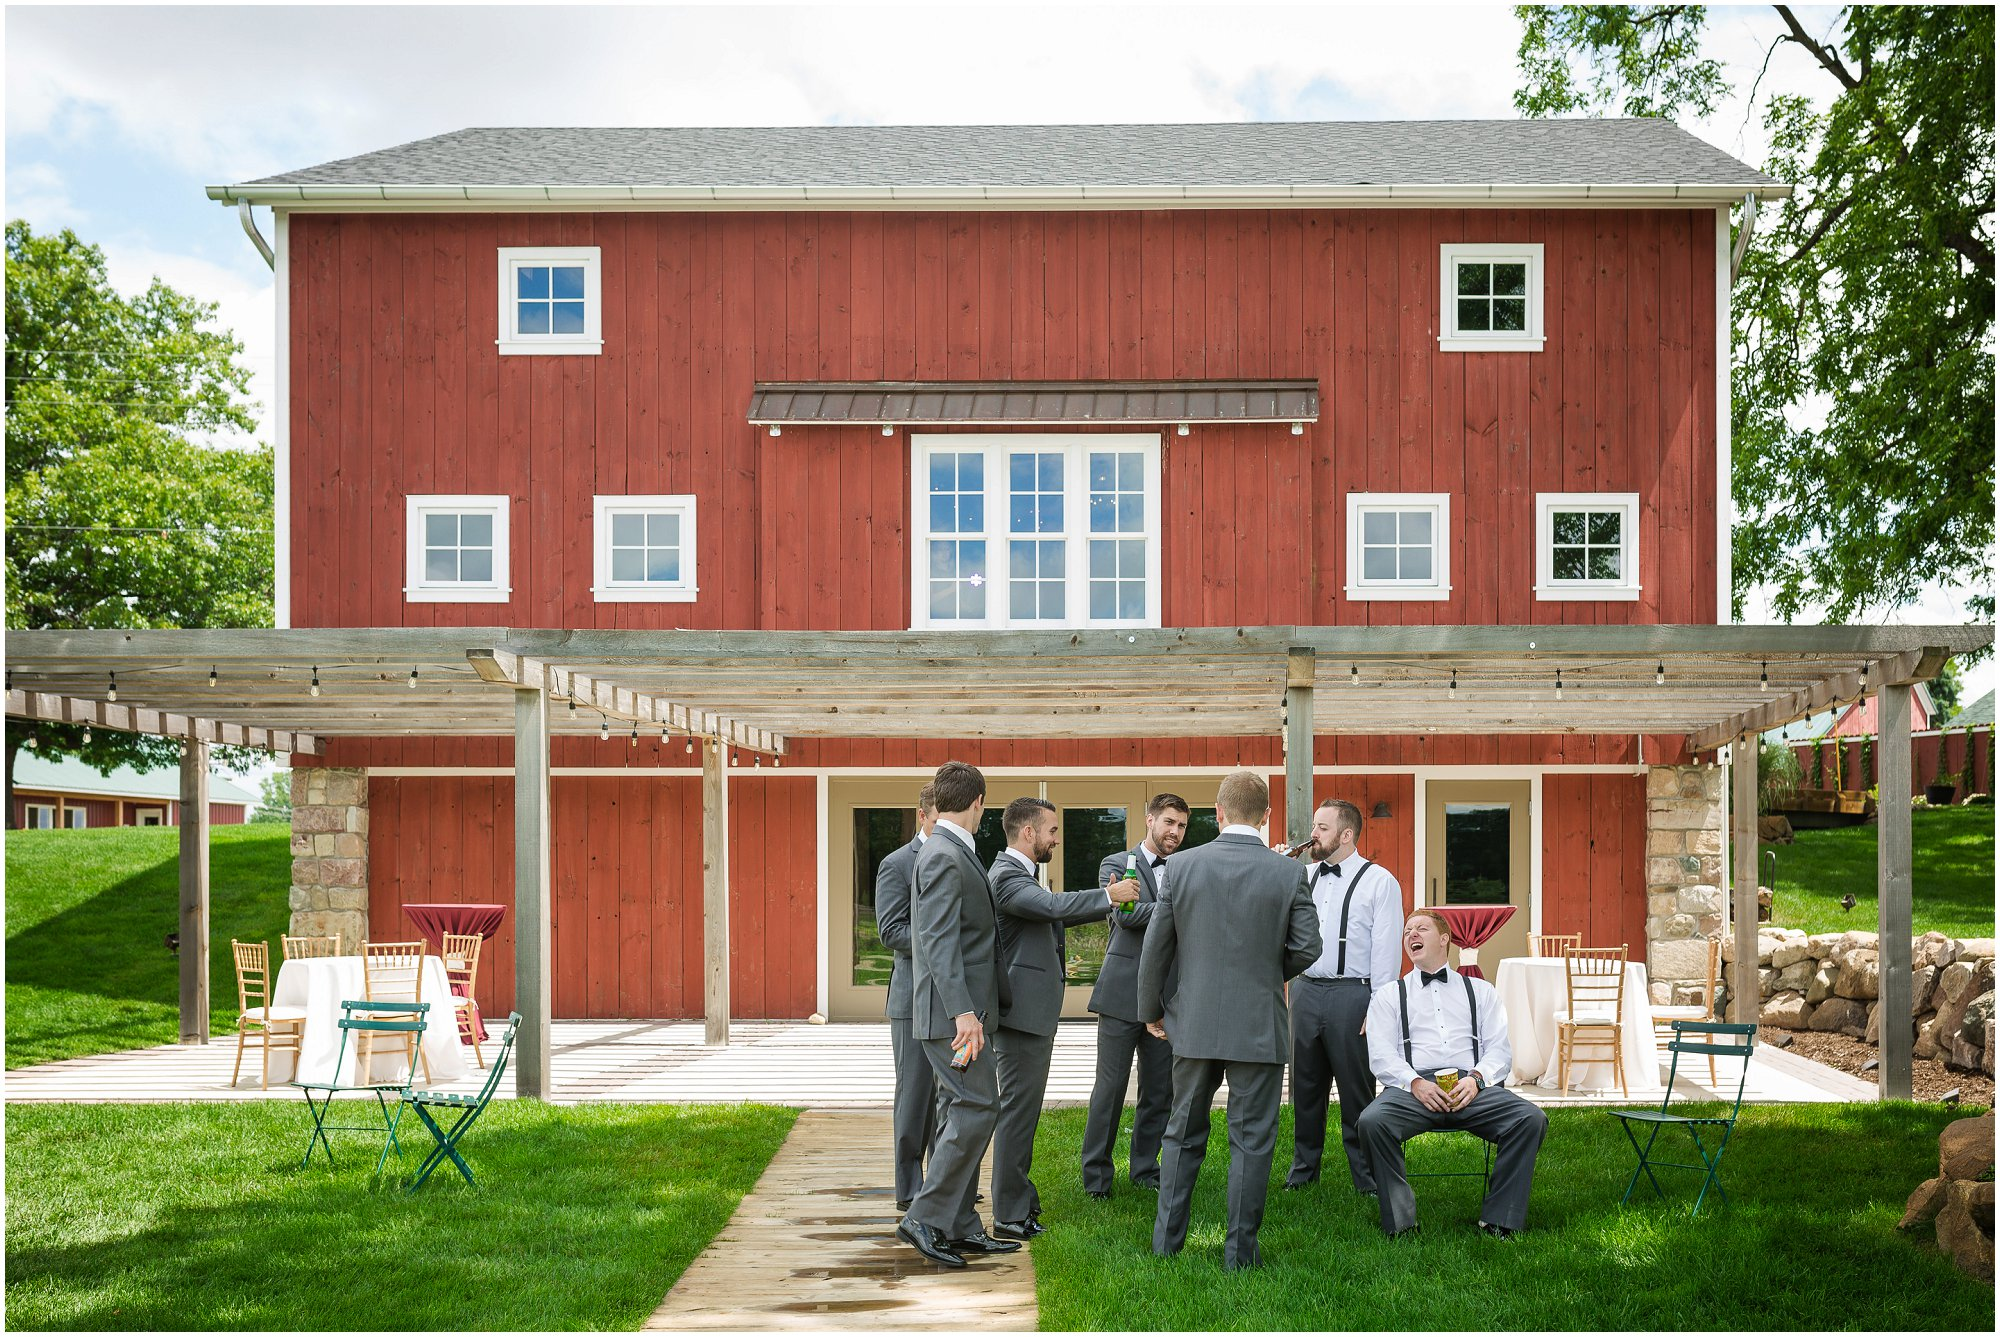 cornman-farms-wedding-michigan-barn-wedding_0947.jpg